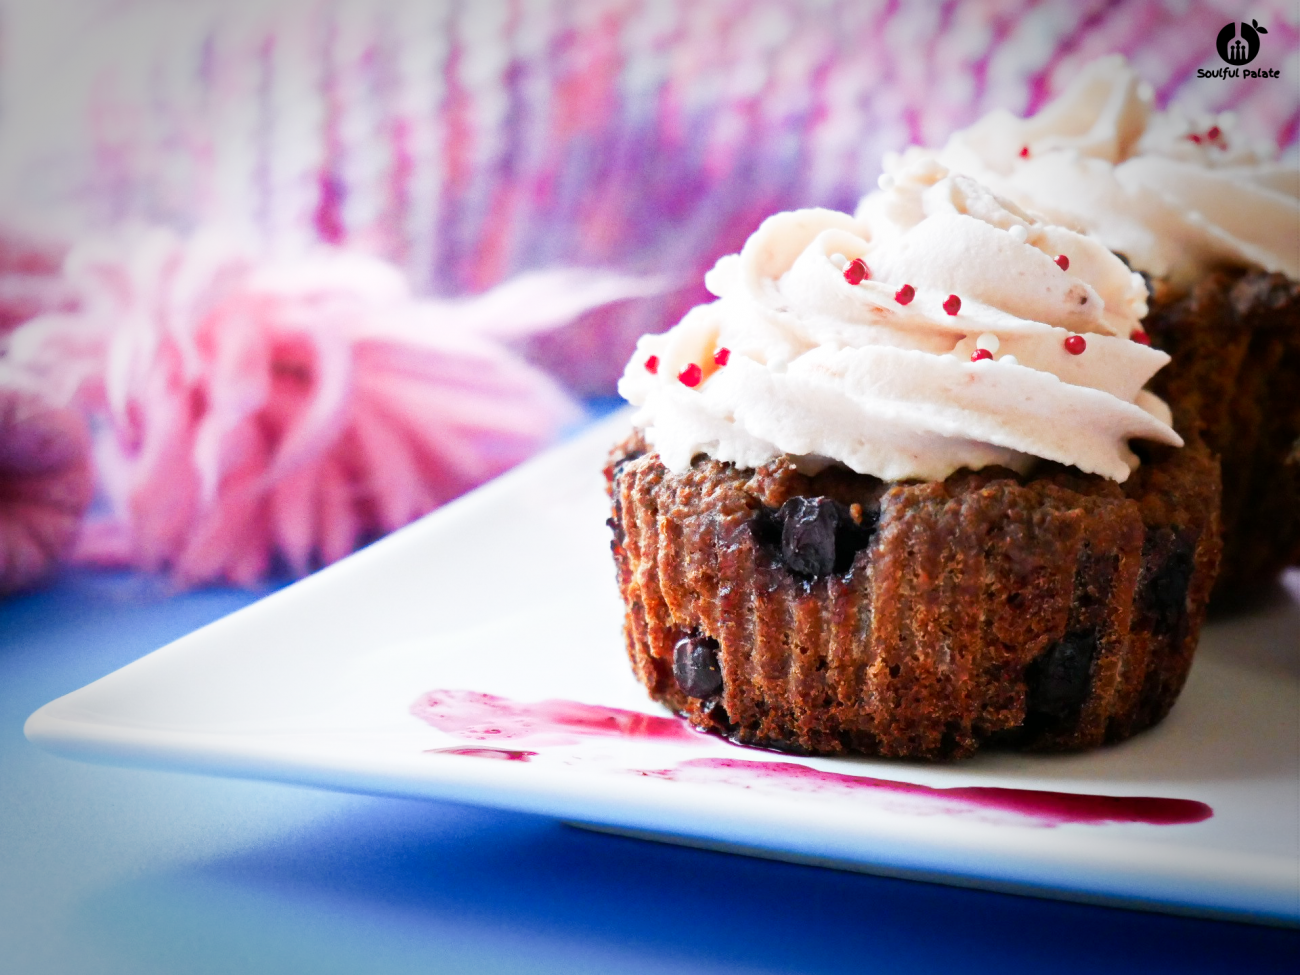 Blueberry Oatmeal Muffins with Raspberry-flavoured Cream Cheese Frosting